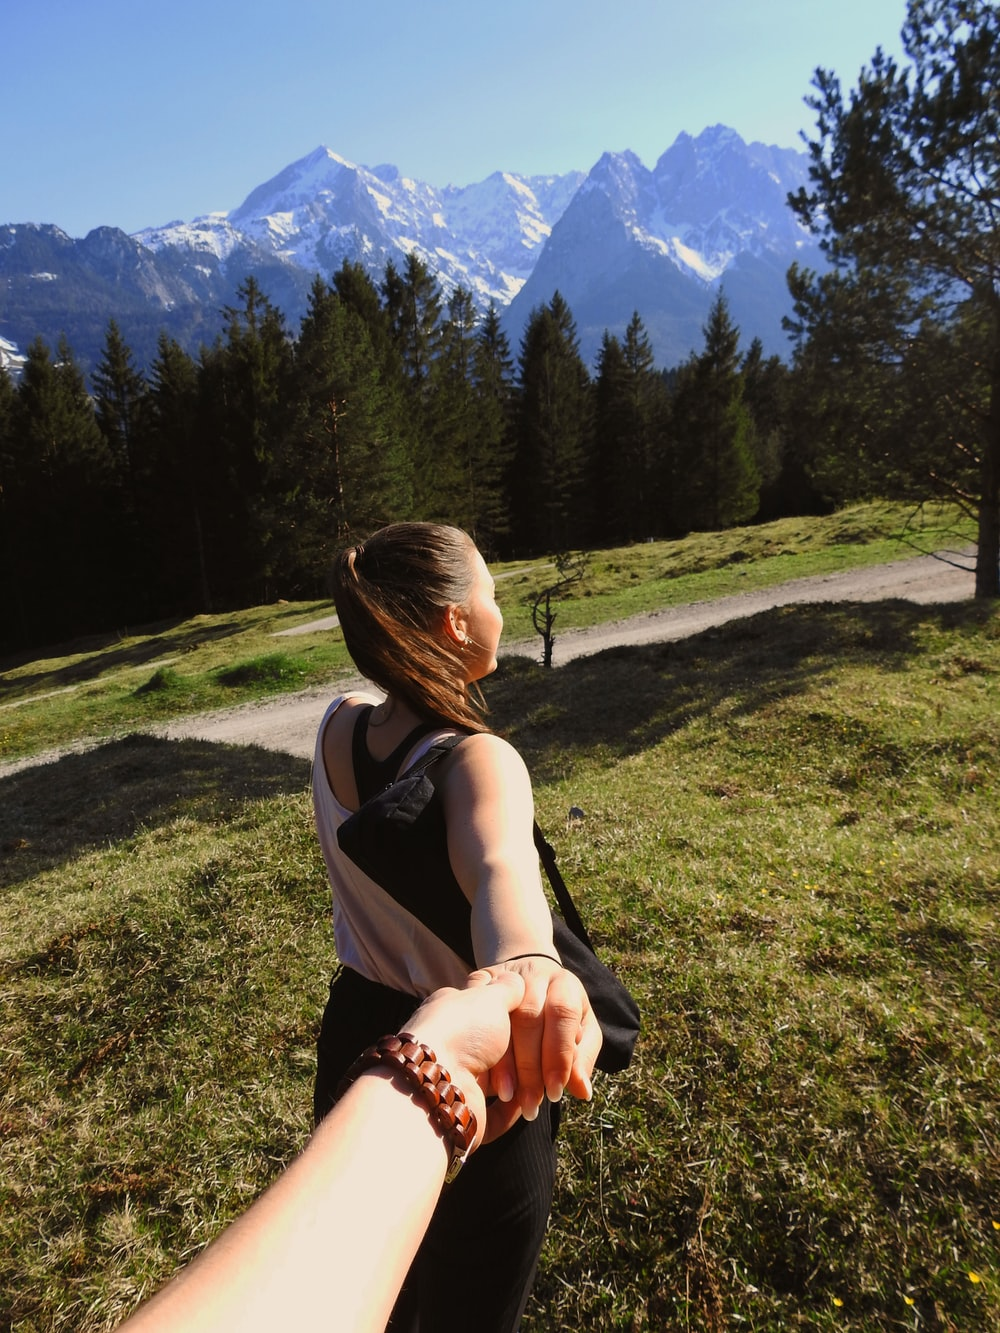 person holding woman hand standing near pine trees and mountain during daytime